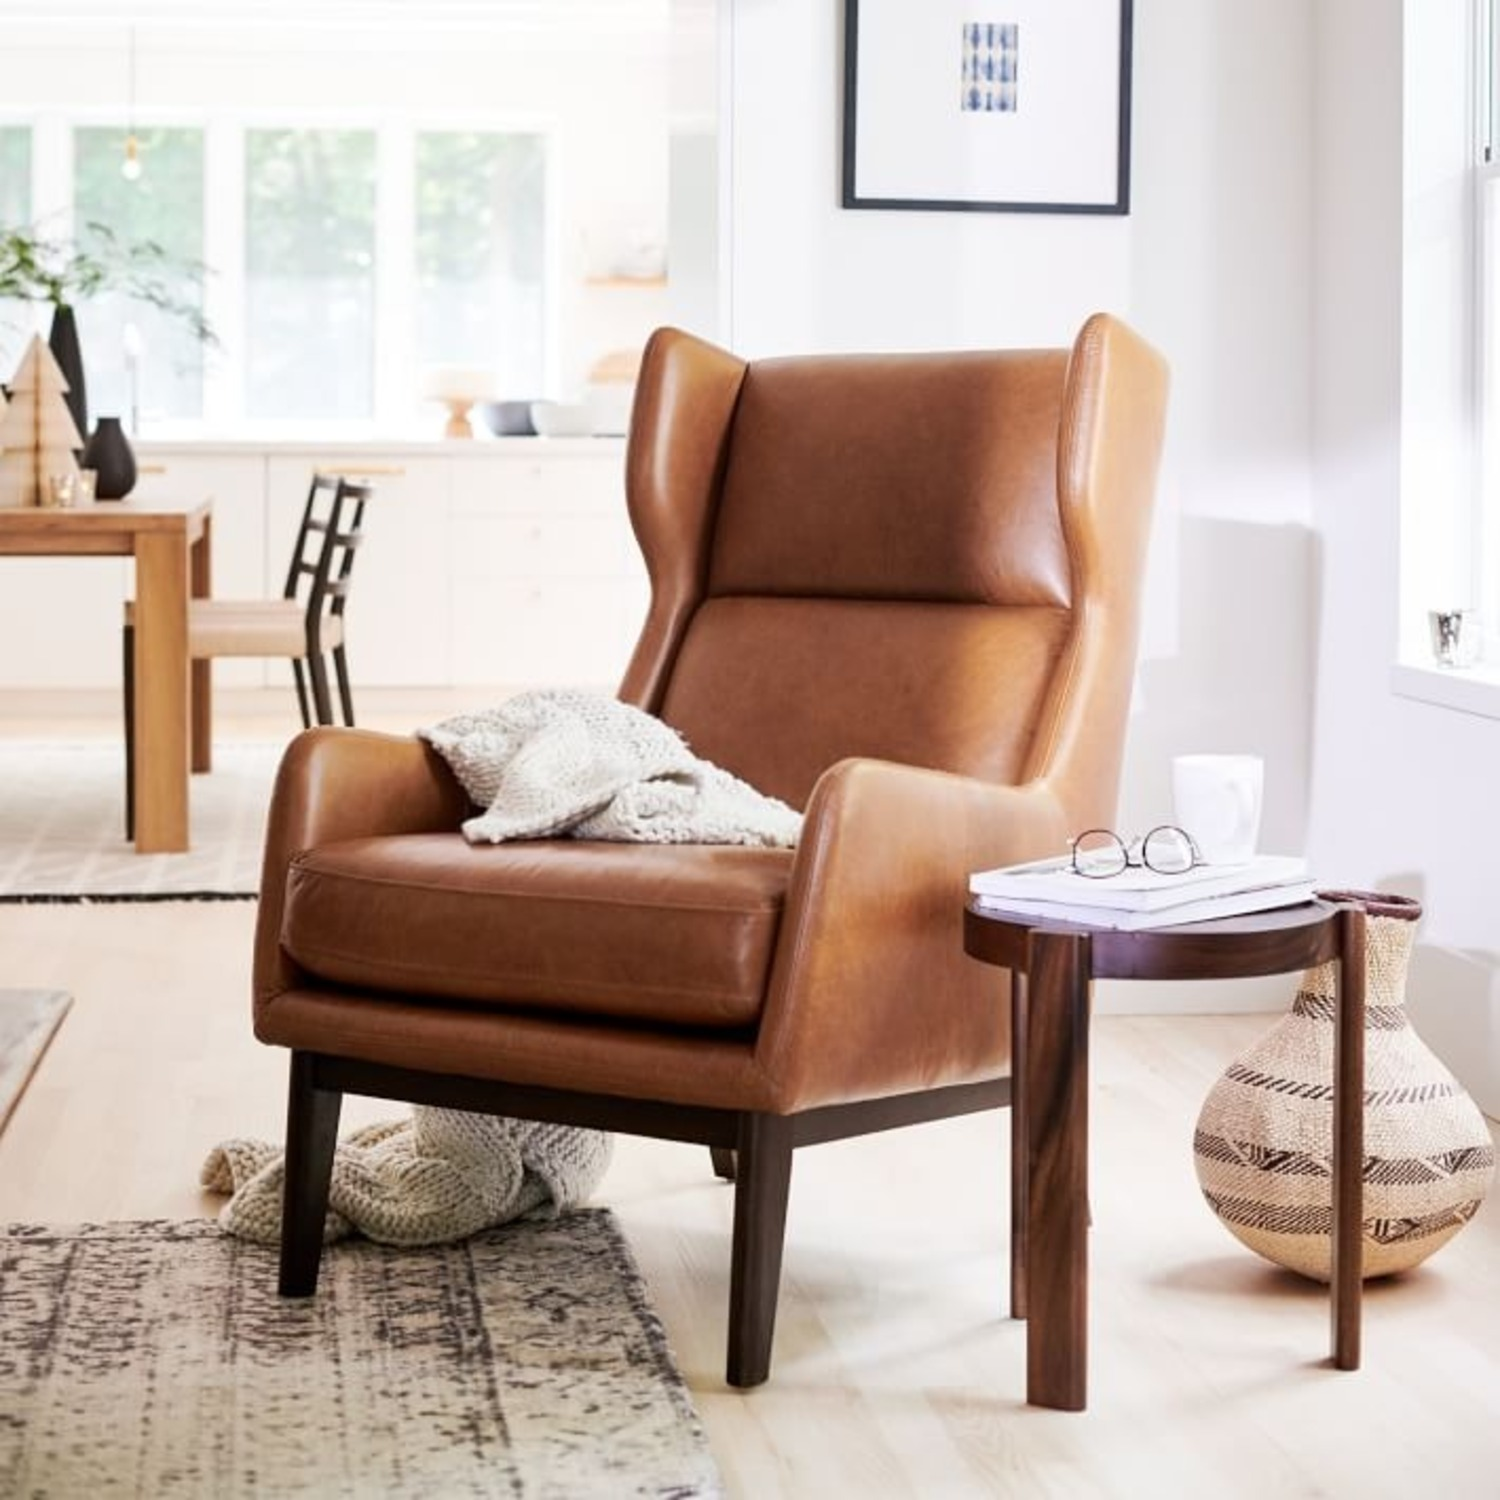 West Elm Ryder Leather Chair - image-2